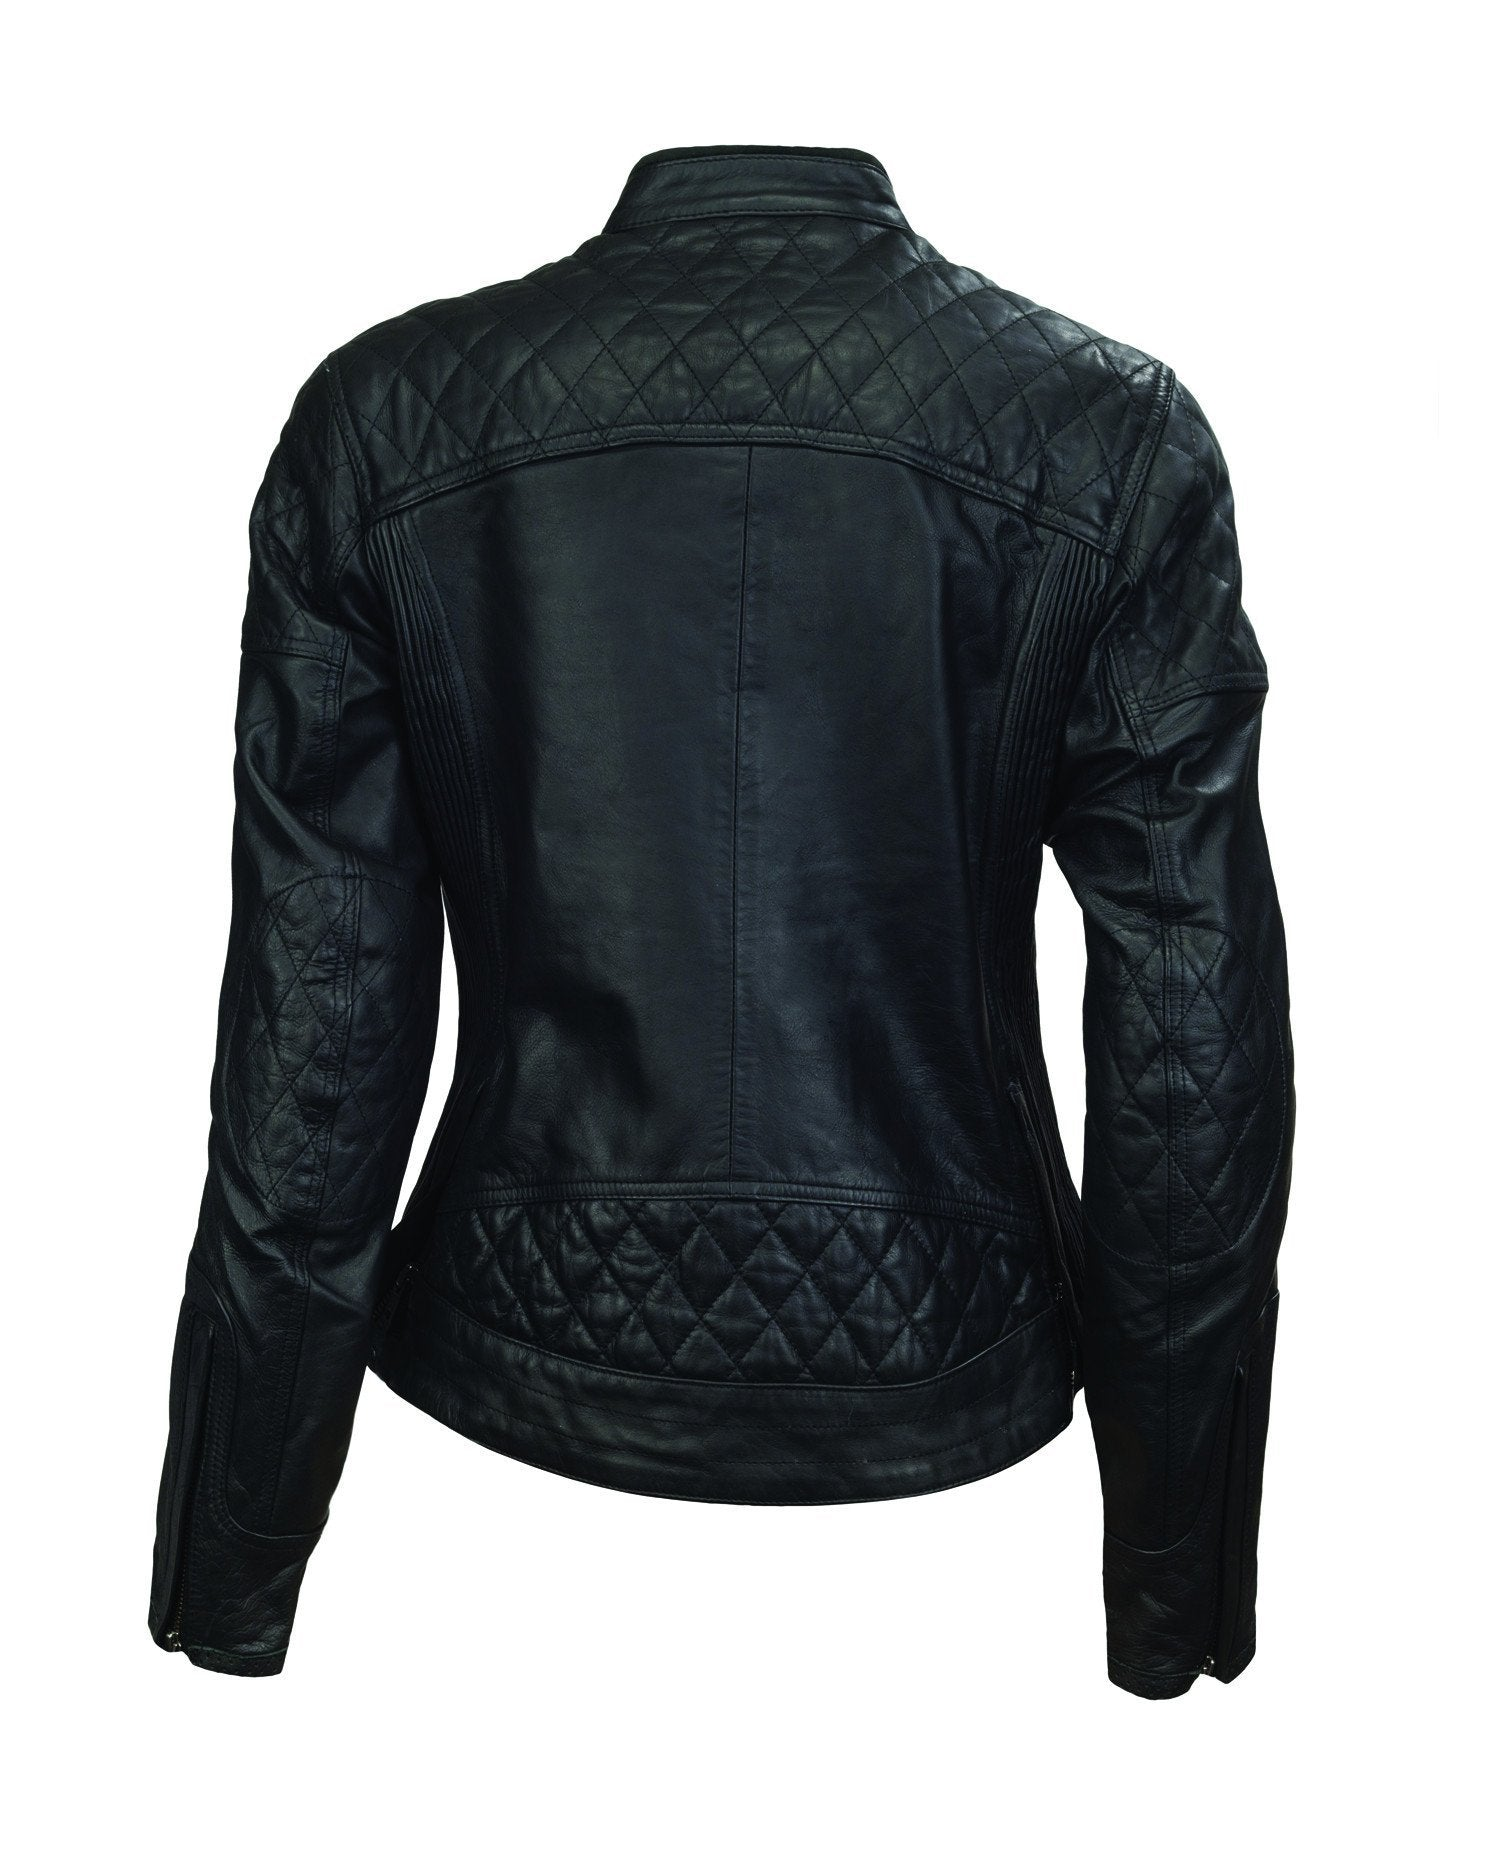 Roland Sands Design - Roland Sands Design Riot Ladies Black Leather Jacket - Ladies Jackets - Salt Flats Clothing